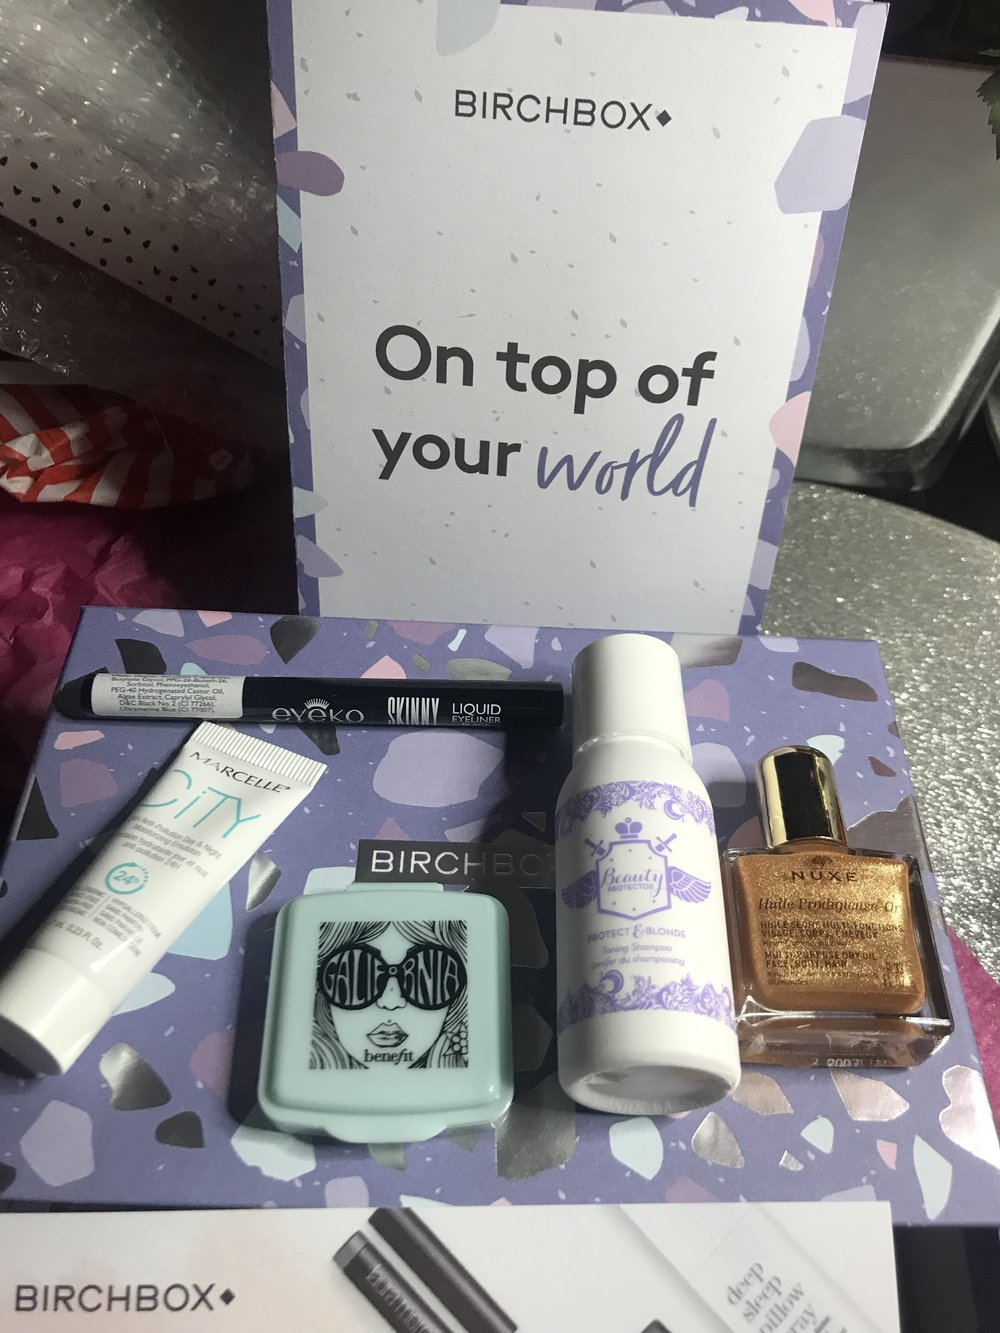 Here's a look at the box I won from Birchbox